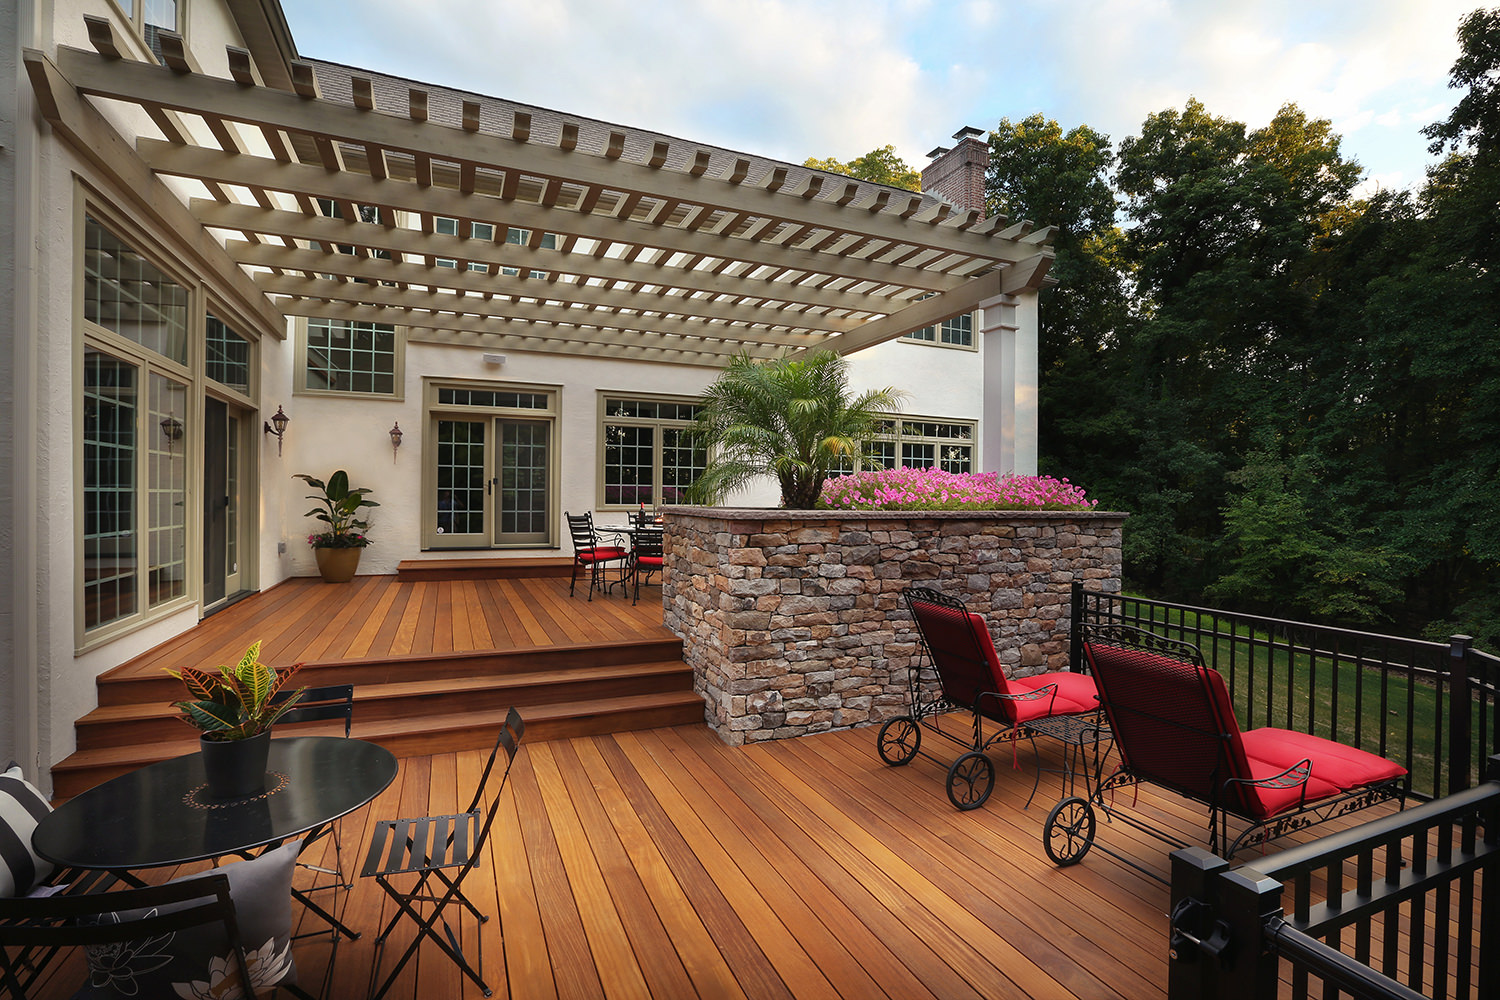 The homeowners were thrilled that the finished deck looked exactly like the 3D model they were shown weeks before. Absolutely stunning.